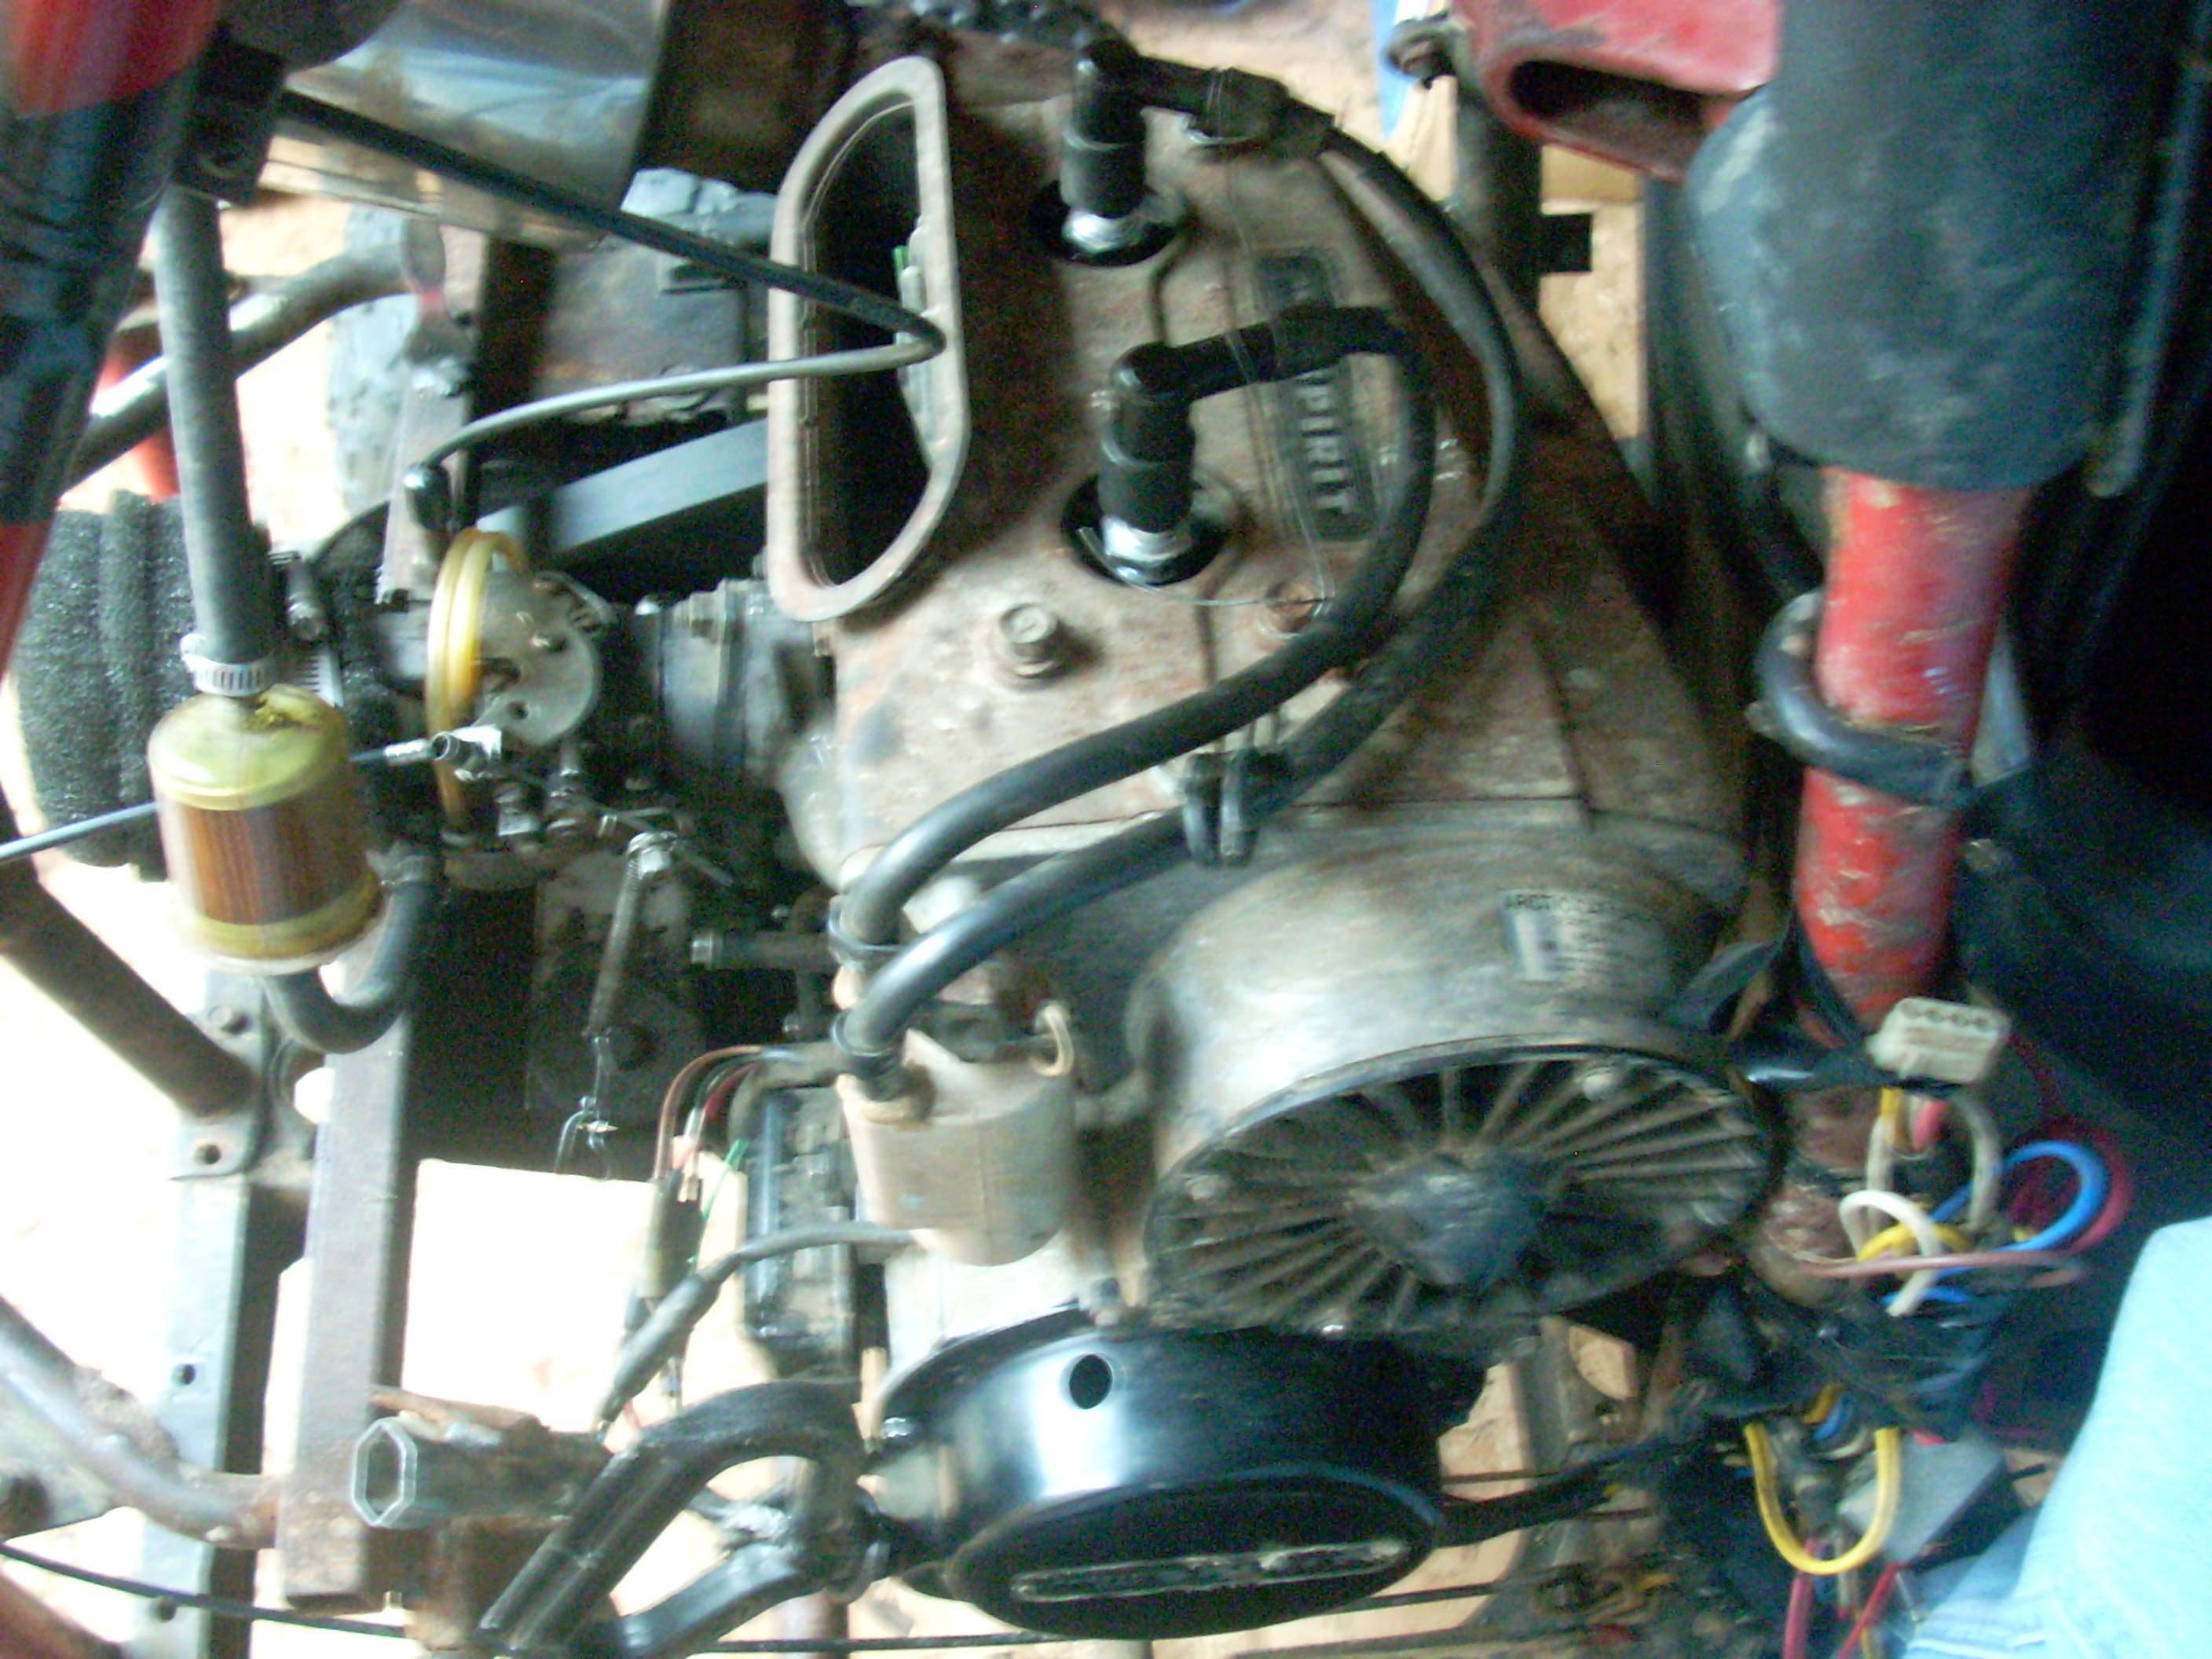 176625d1252508085 artic cat 440 carb issue what i told 79 jag dscn0320 artic cat 440 carb issue ( from what i was told 79 jag Arctic Cat 250 Wiring Diagram at crackthecode.co